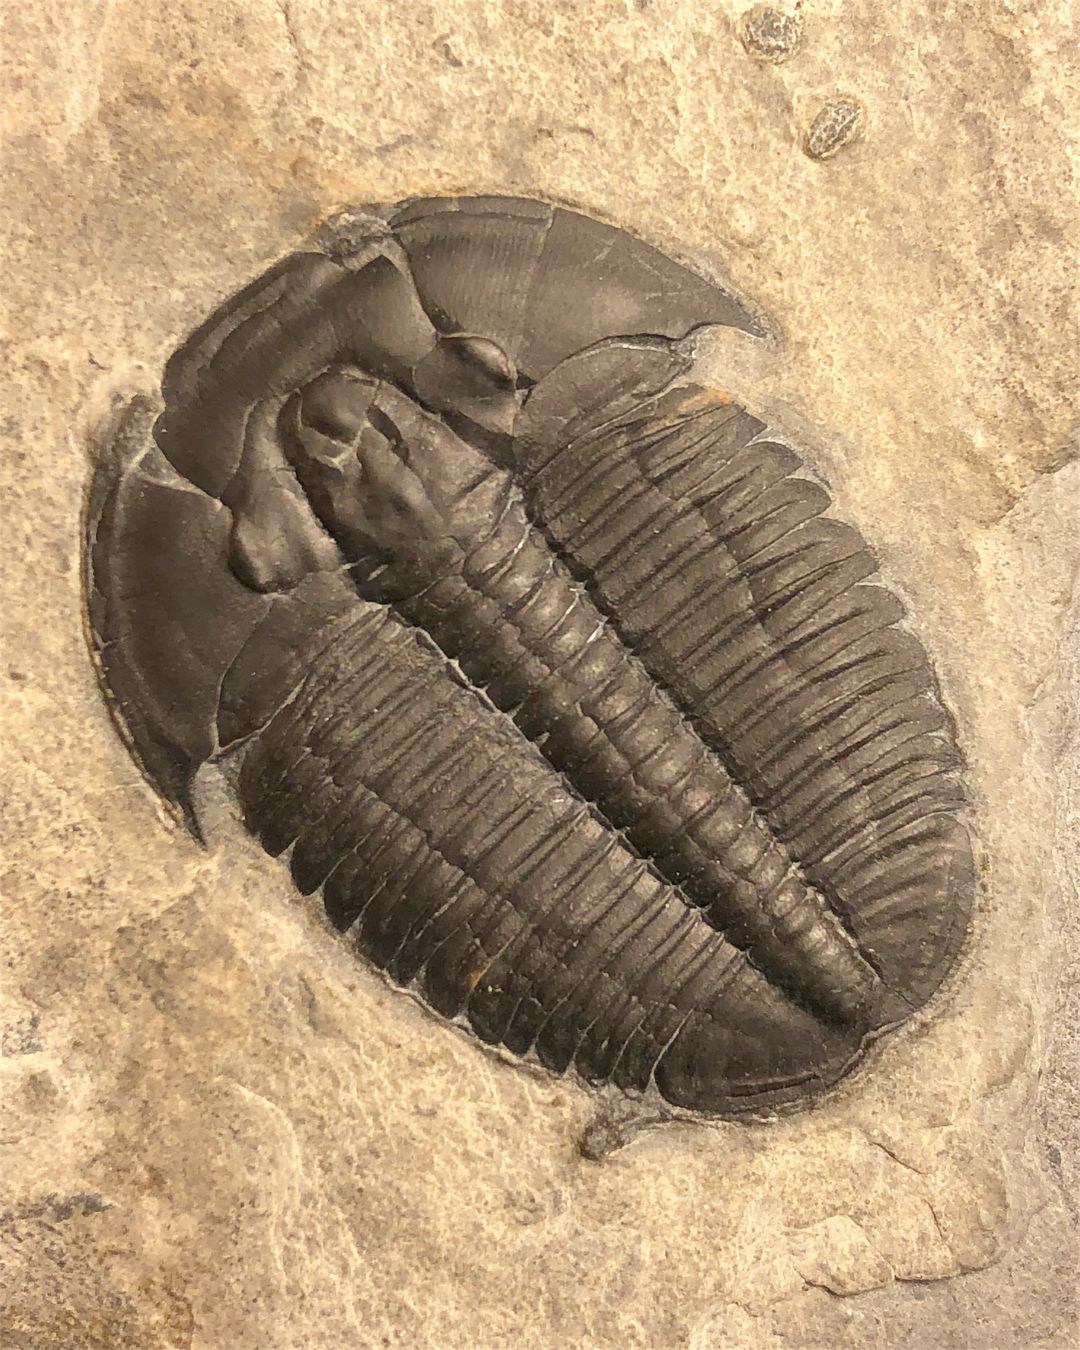 America S Most Common Trilobite This Is A 1 35 Elrathia Kingii From The Wheeler Fm Millard County Fossiles Squelette Paleontologie